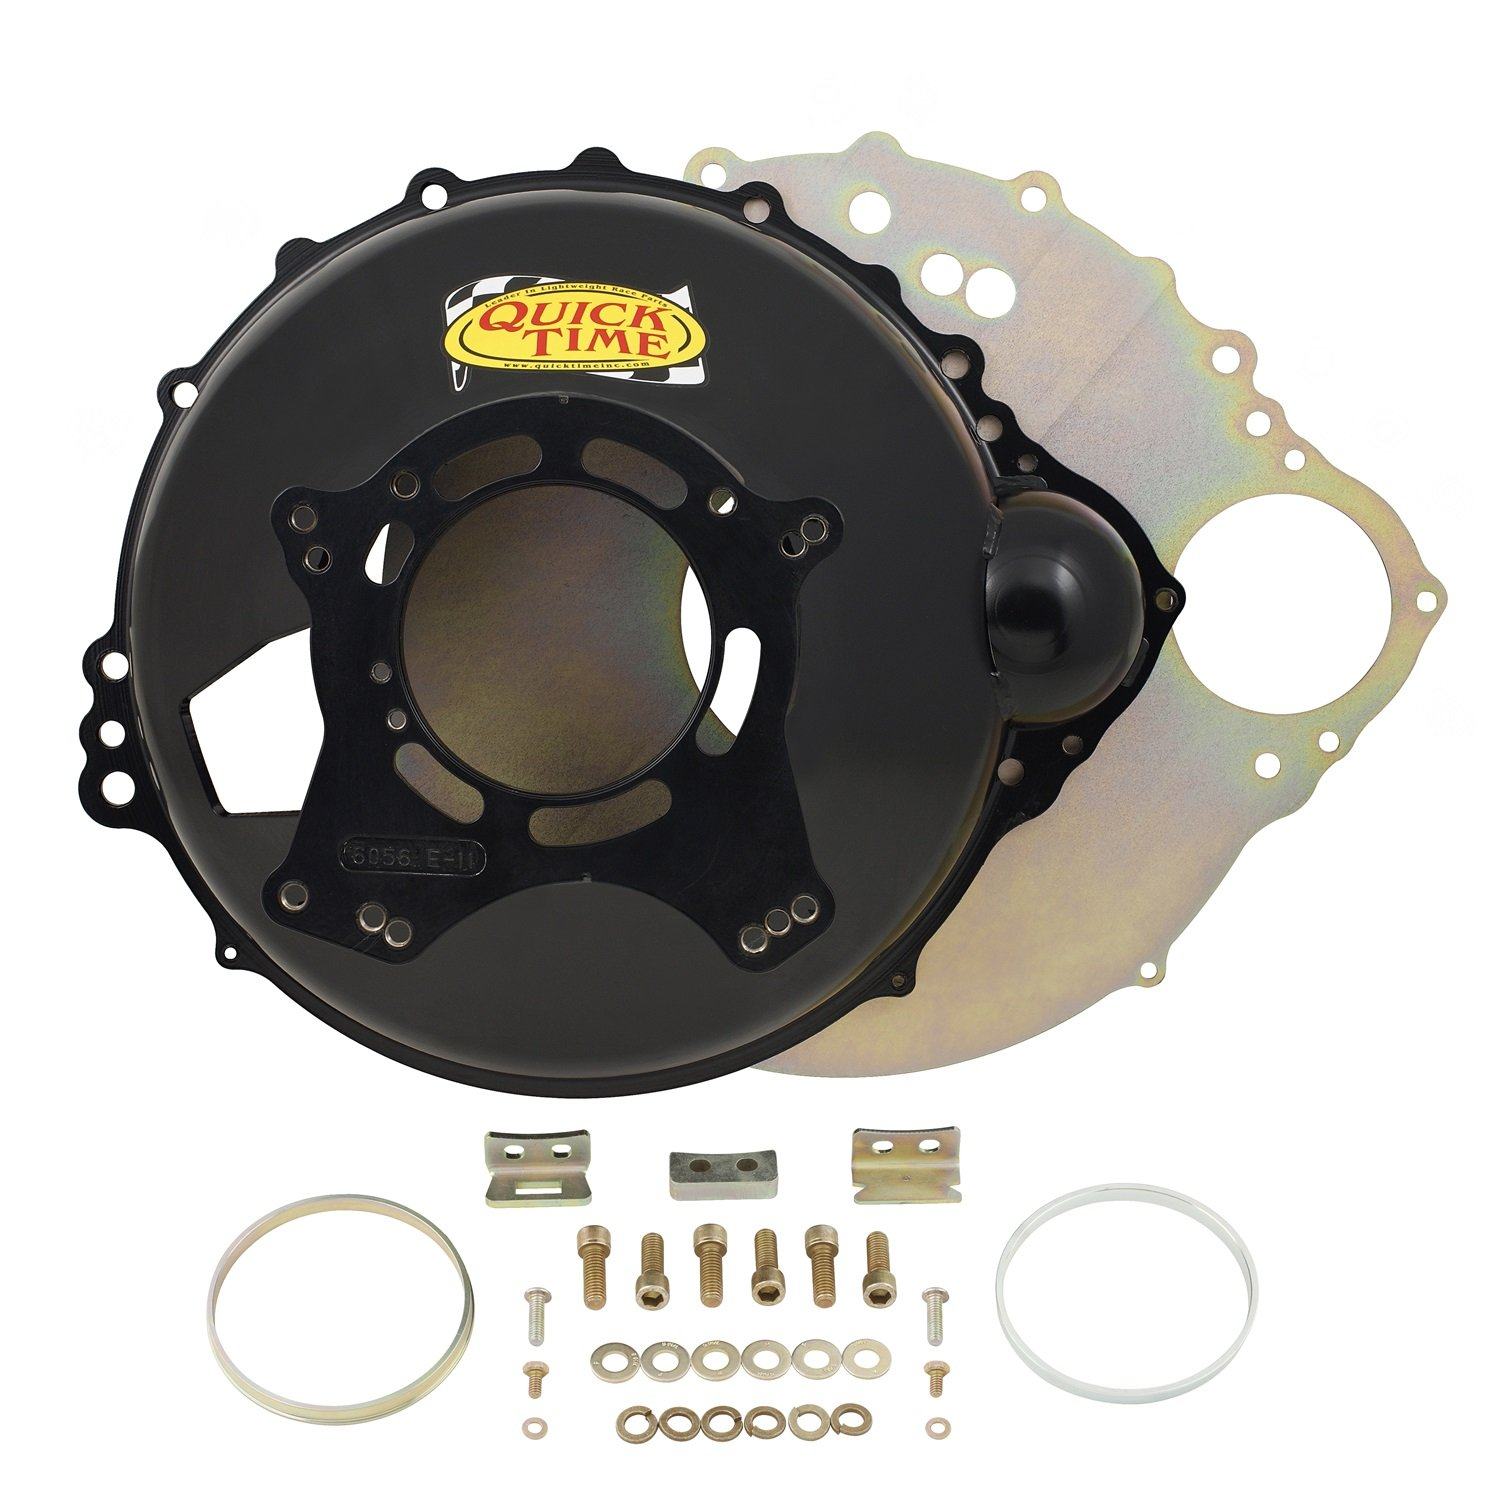 QuickTime (RM-6056) Ford Big Block Engine to T5/TKO/3550 Transmission Bellhousing by Quick Time (Image #1)